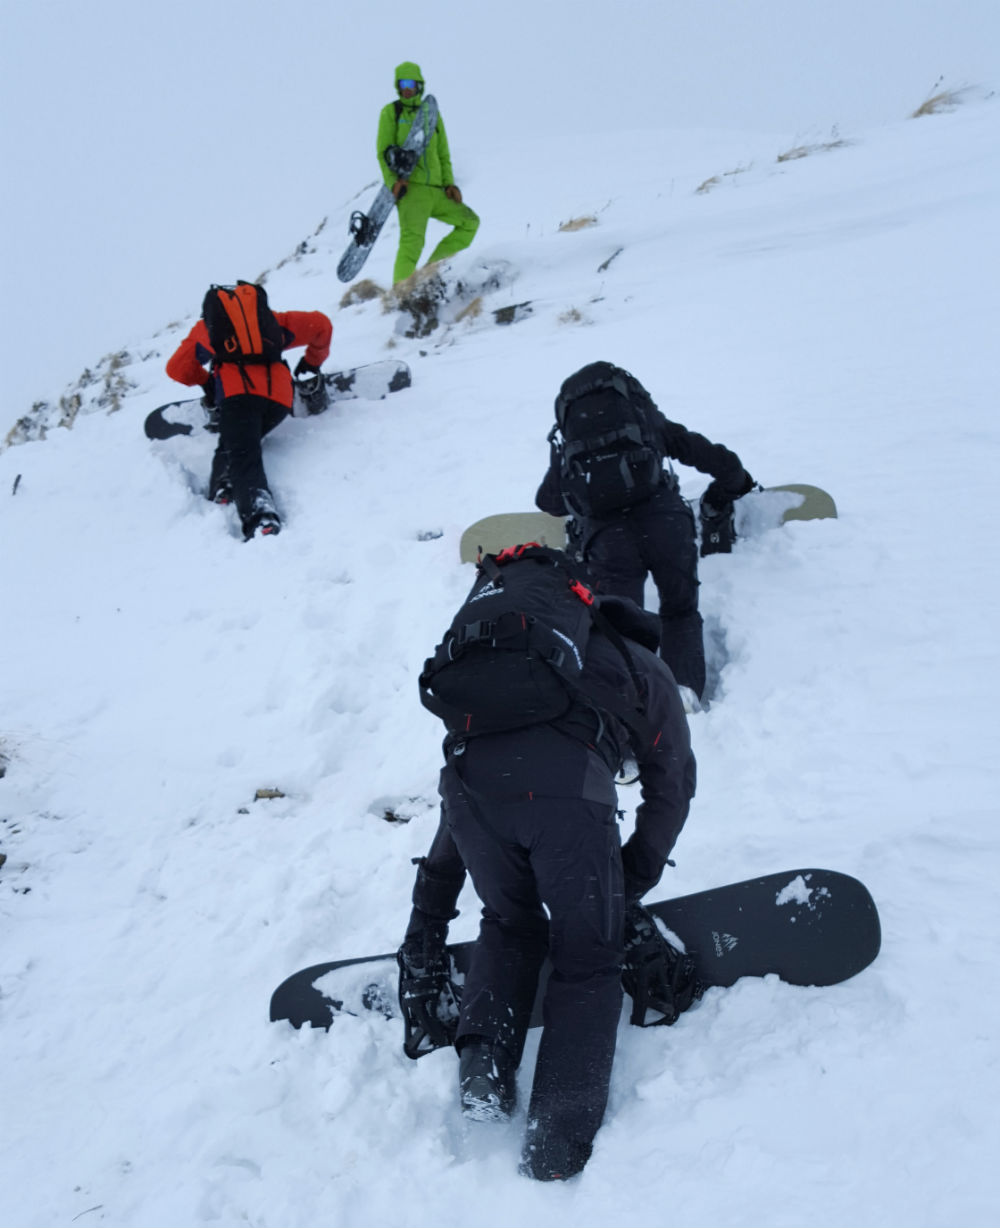 Review of Mint Snowboarding backcountry camp climb